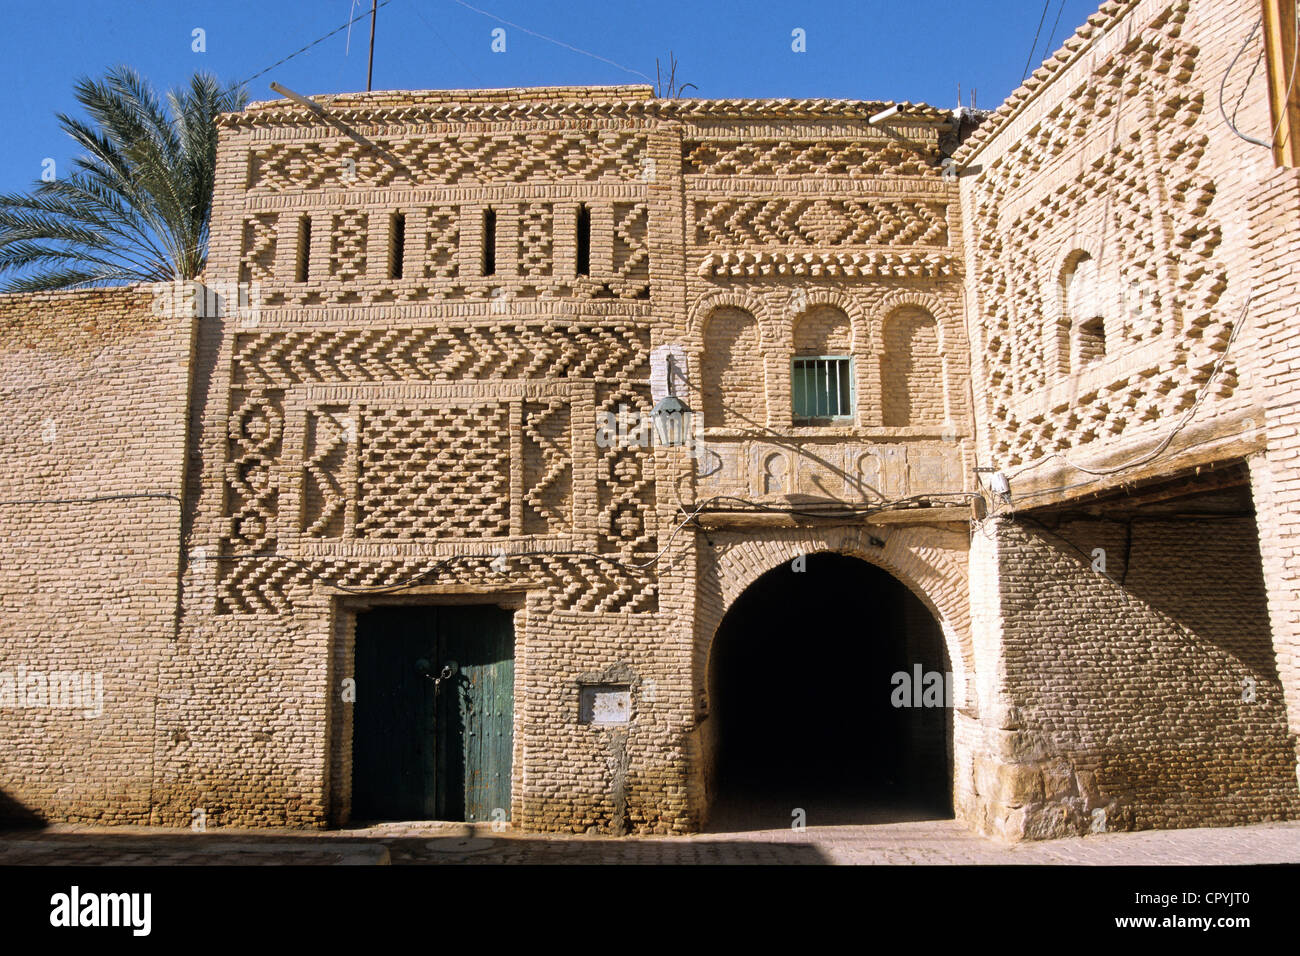 Tunisia, Tozeur Governorate, Tozeur, the Medina, bricks houses decorated of juxtapositions of geometric motif - Stock Image